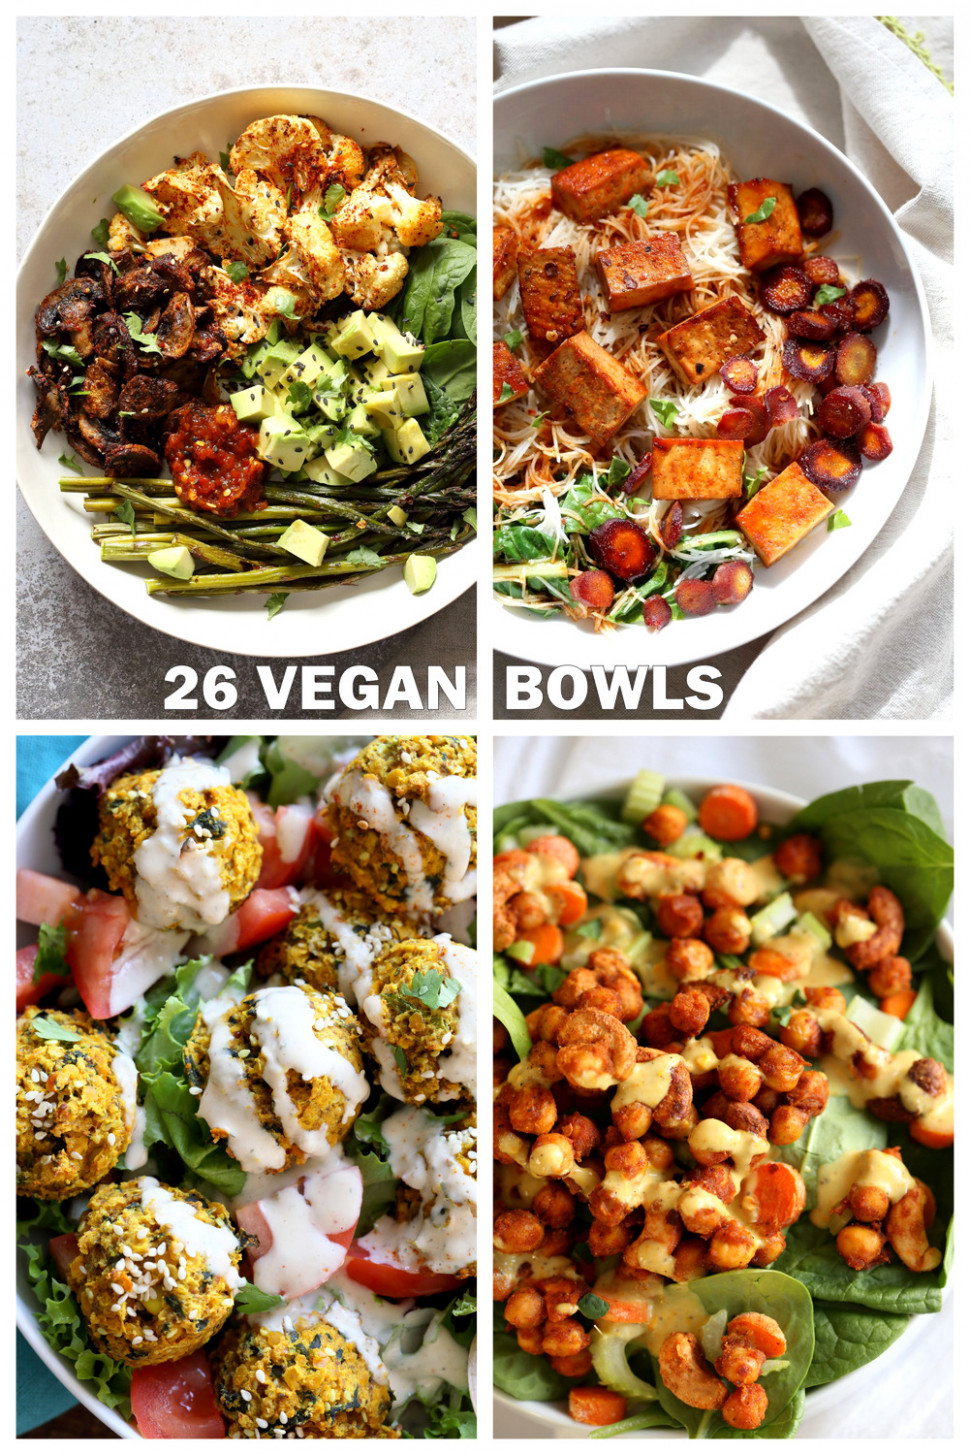 10 Vegan Bowl Recipes - Vegan Richa - Recipes Vegetarian Summer